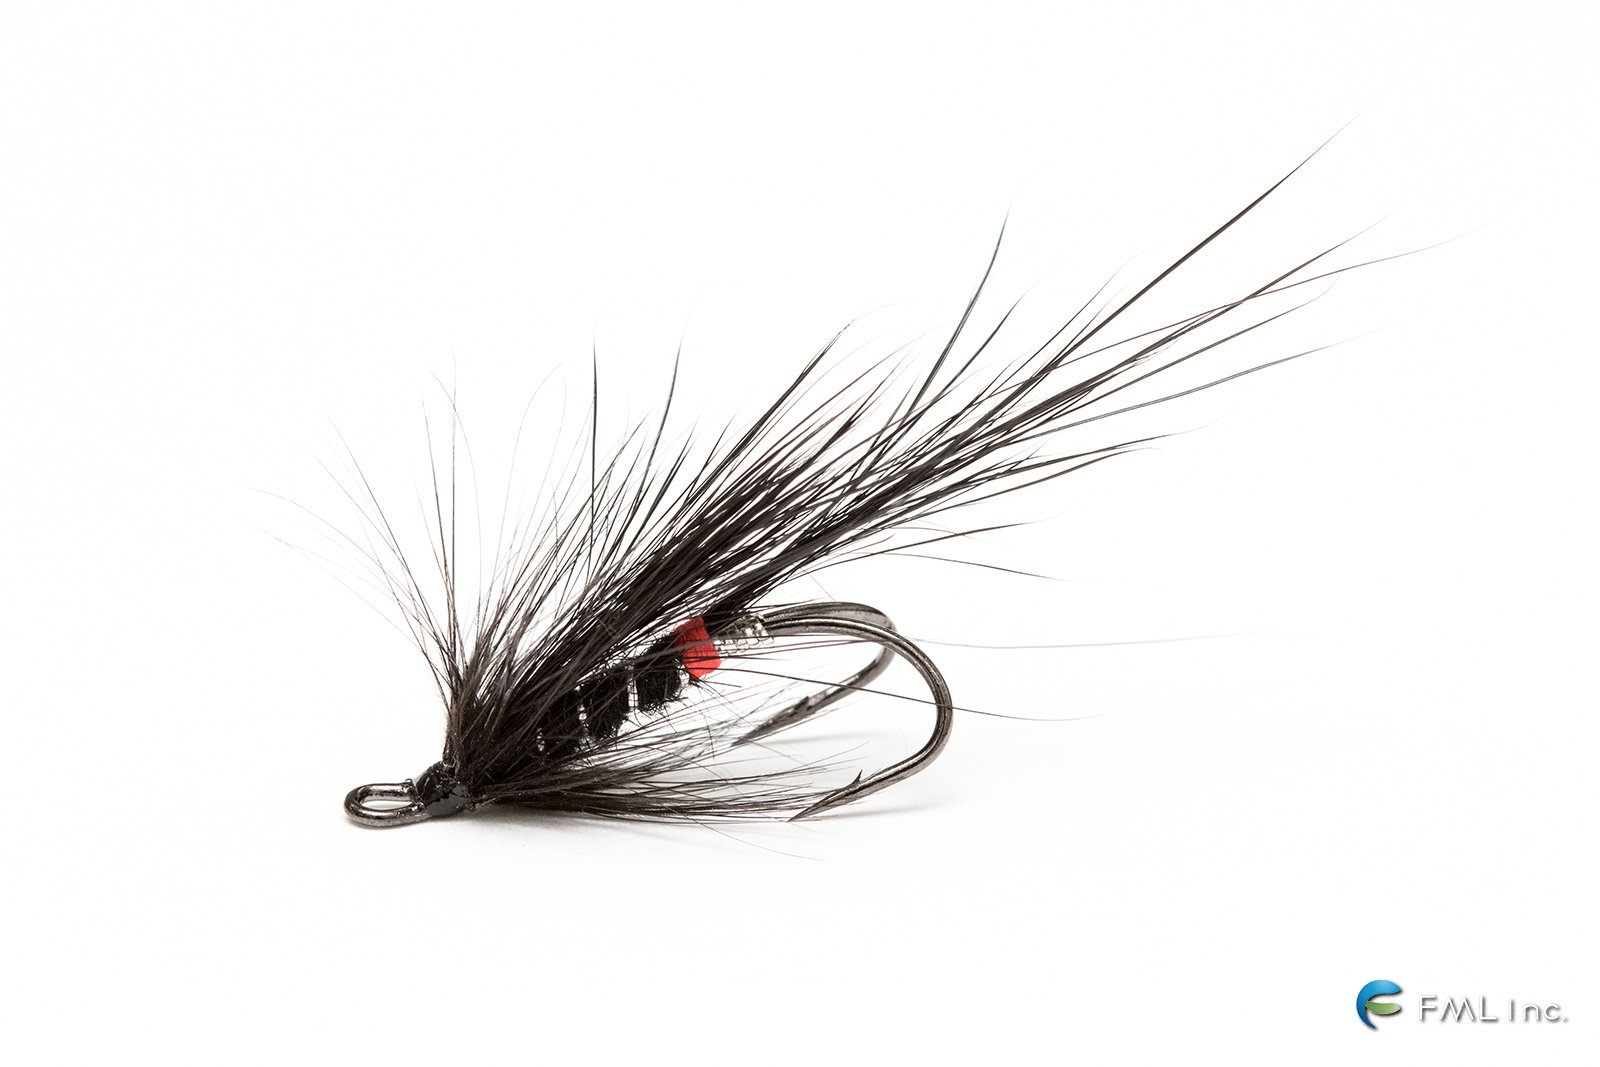 <img class='new_mark_img1' src='//img.shop-pro.jp/img/new/icons5.gif' style='border:none;display:inline;margin:0px;padding:0px;width:auto;' />Eumer Harri's Special Salmon Fly (Nutria wing) (5770)